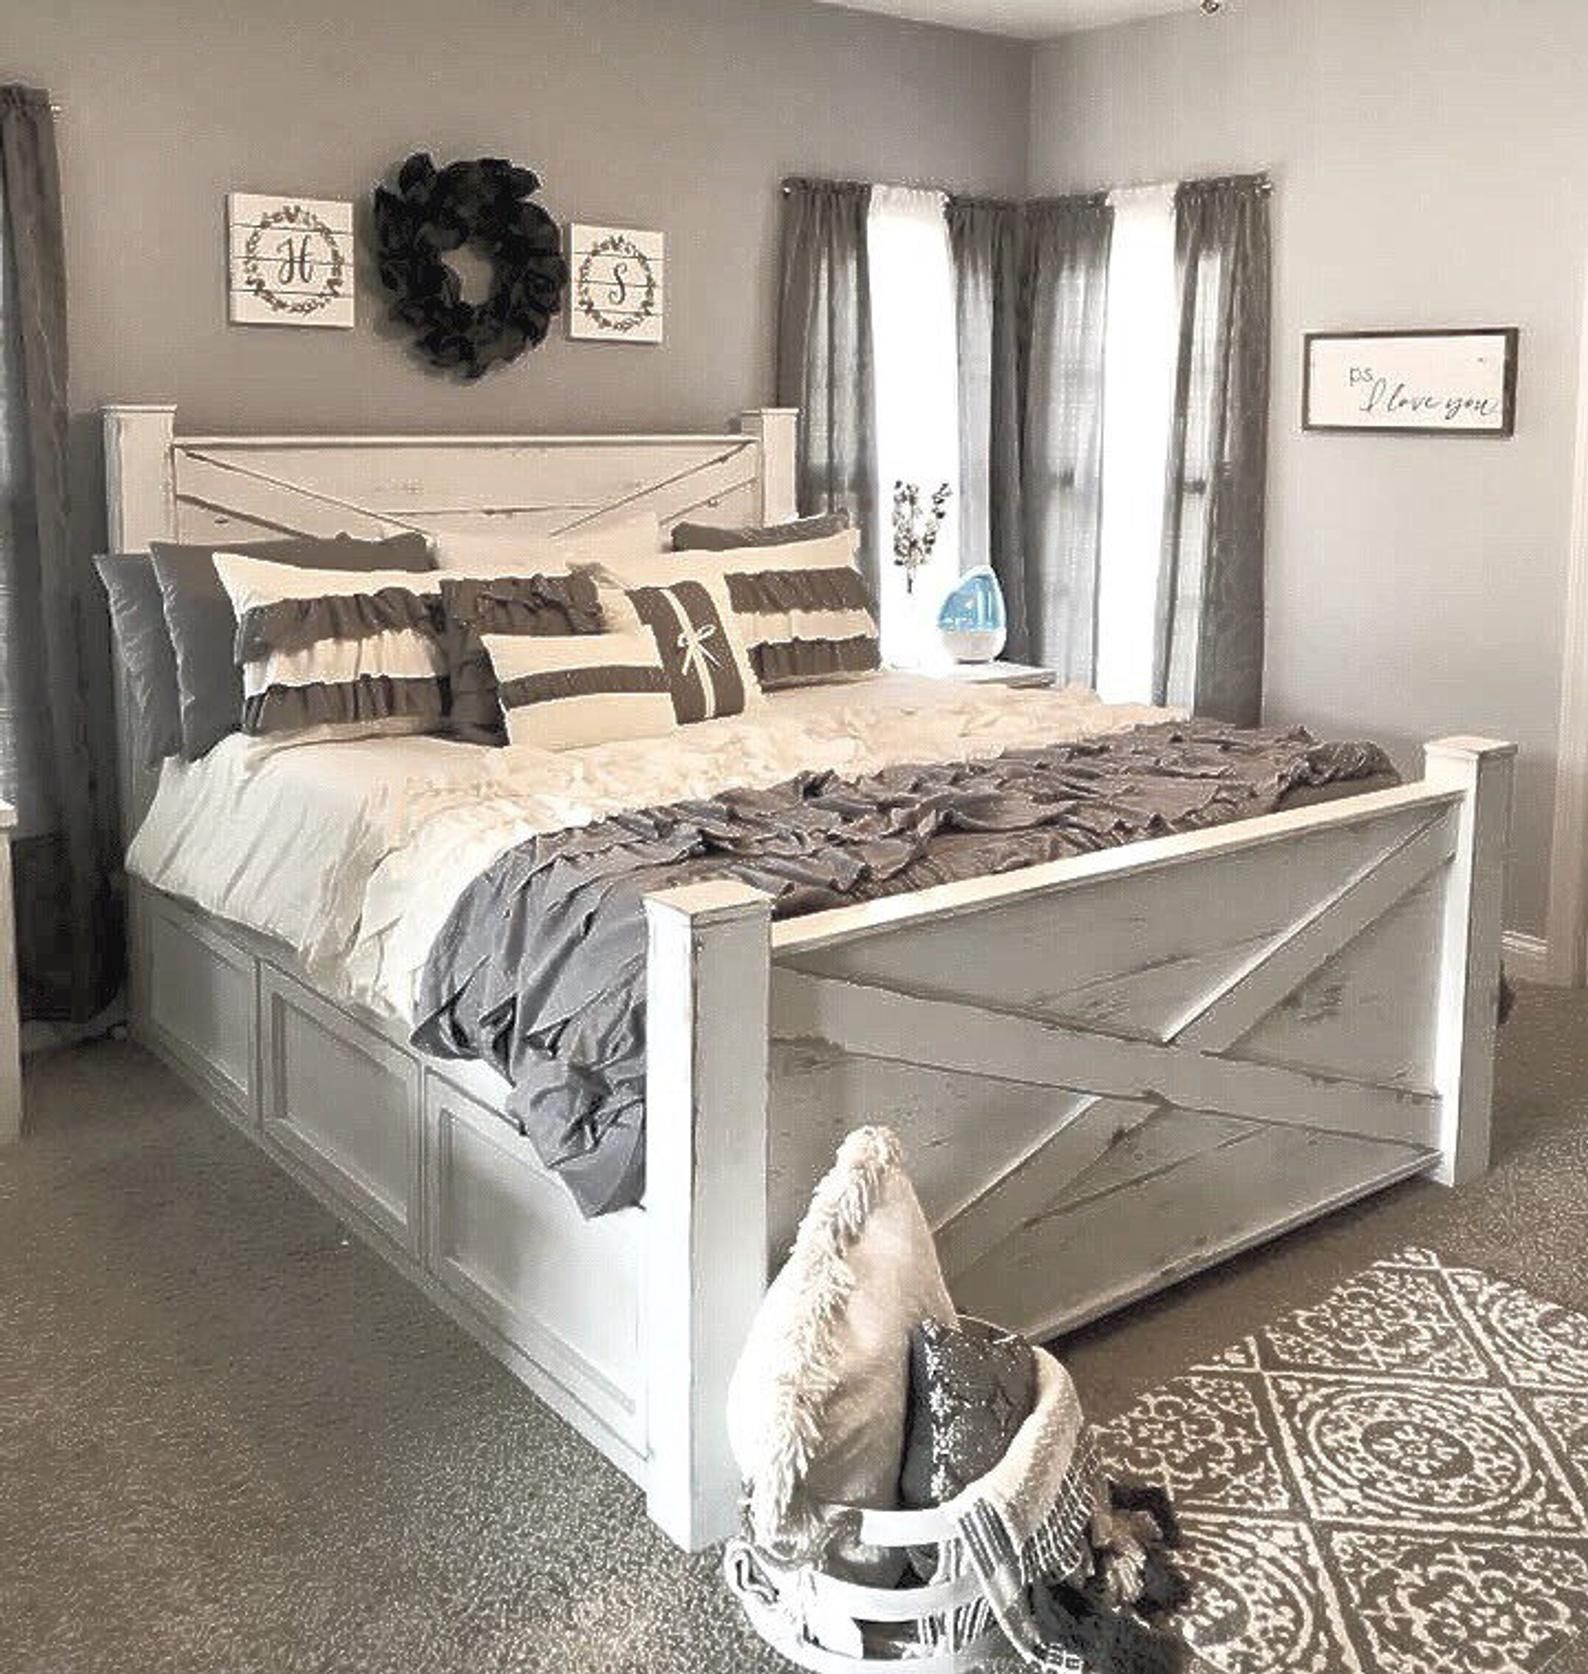 THE OHIO bedroom bed frame